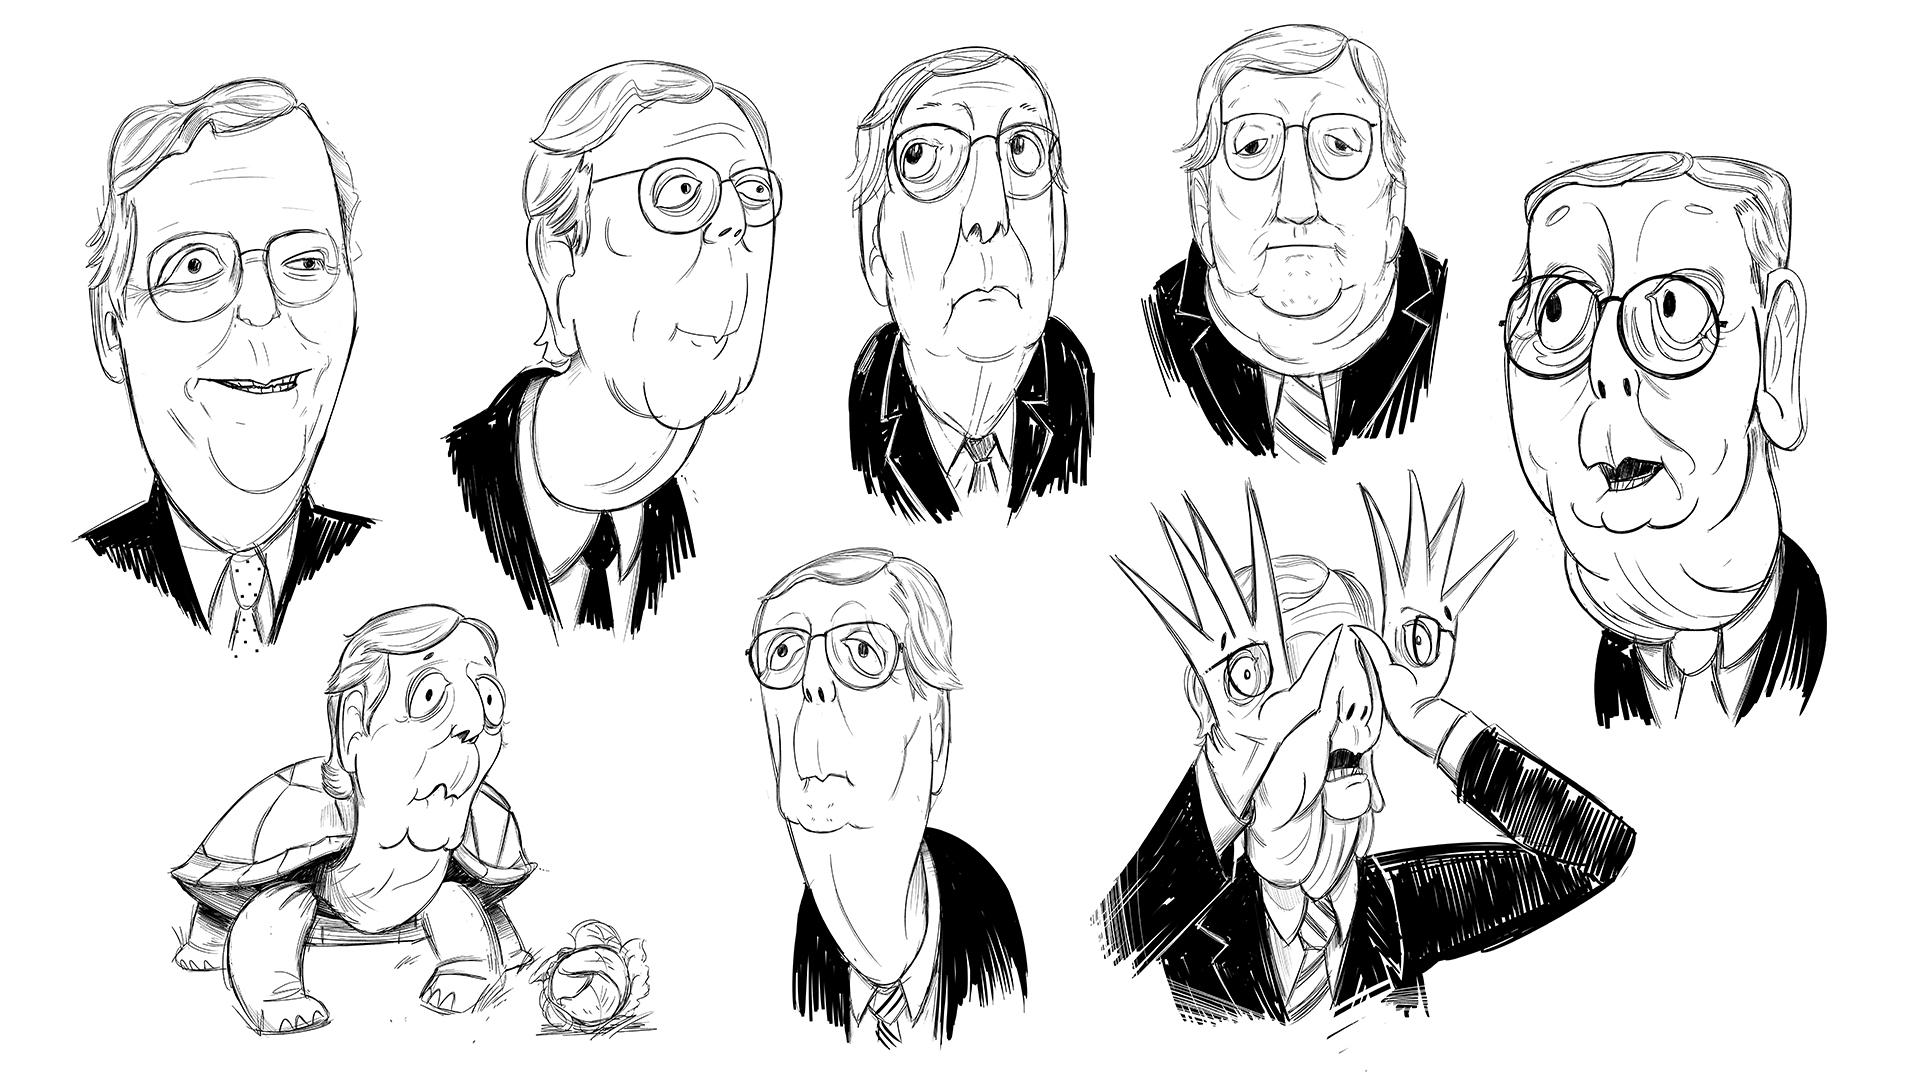 03_McConnell_Sketches_01.jpg